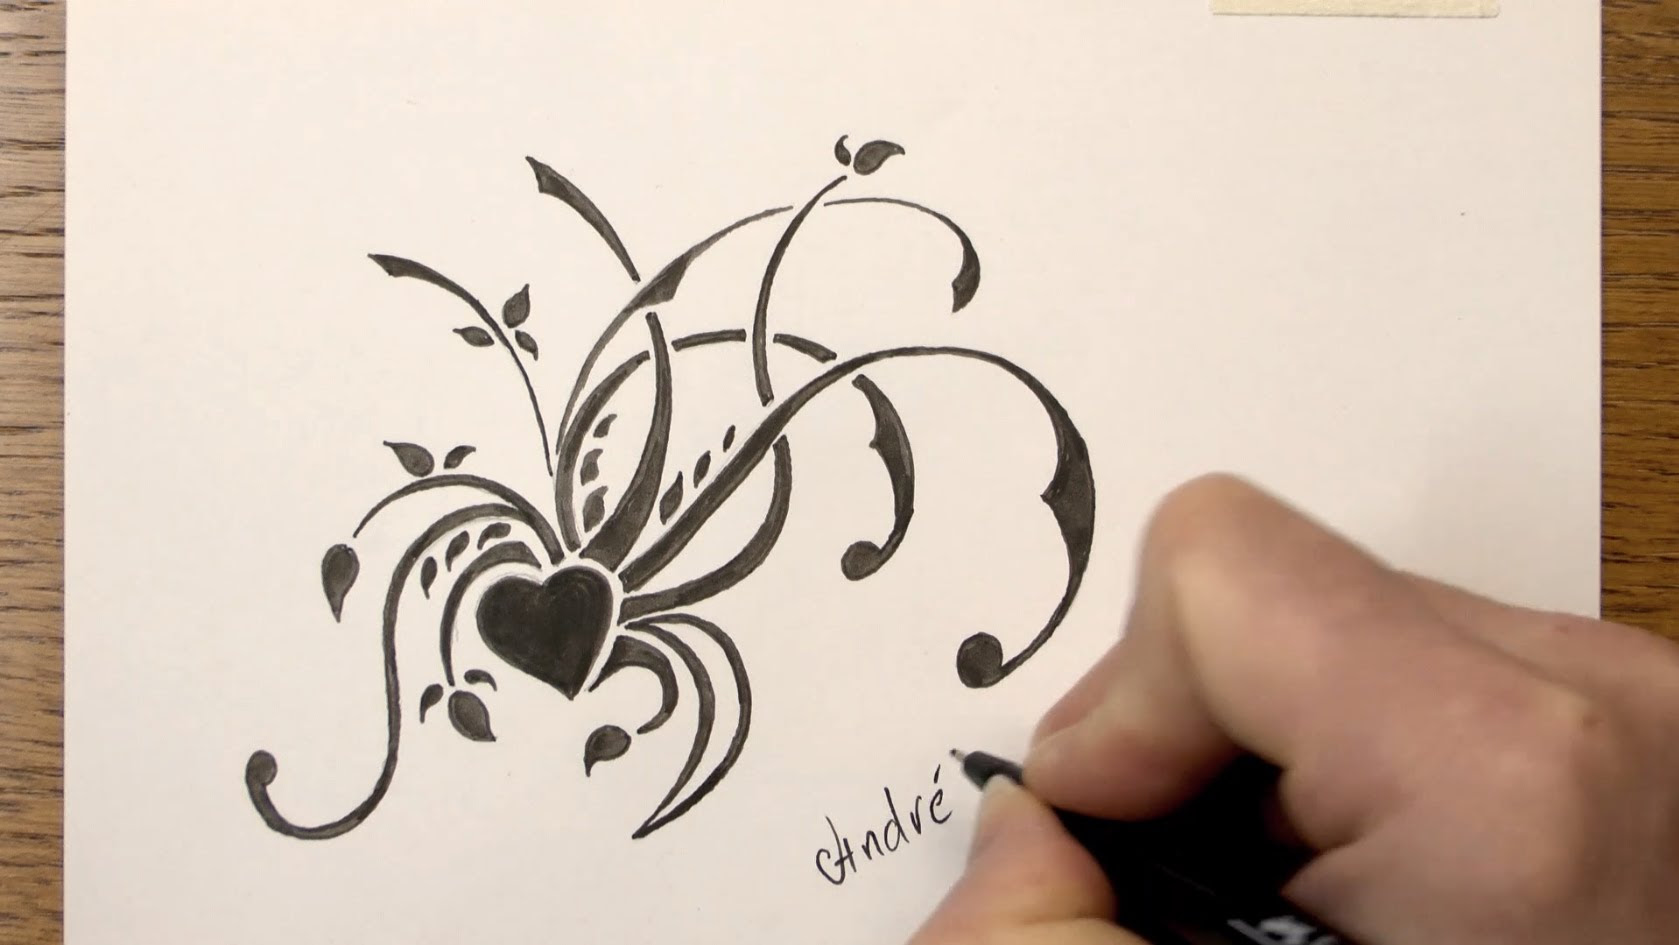 Drawing Designs On Paper Borders Easy Max Installer,Black Female Fade Haircut Designs With Color